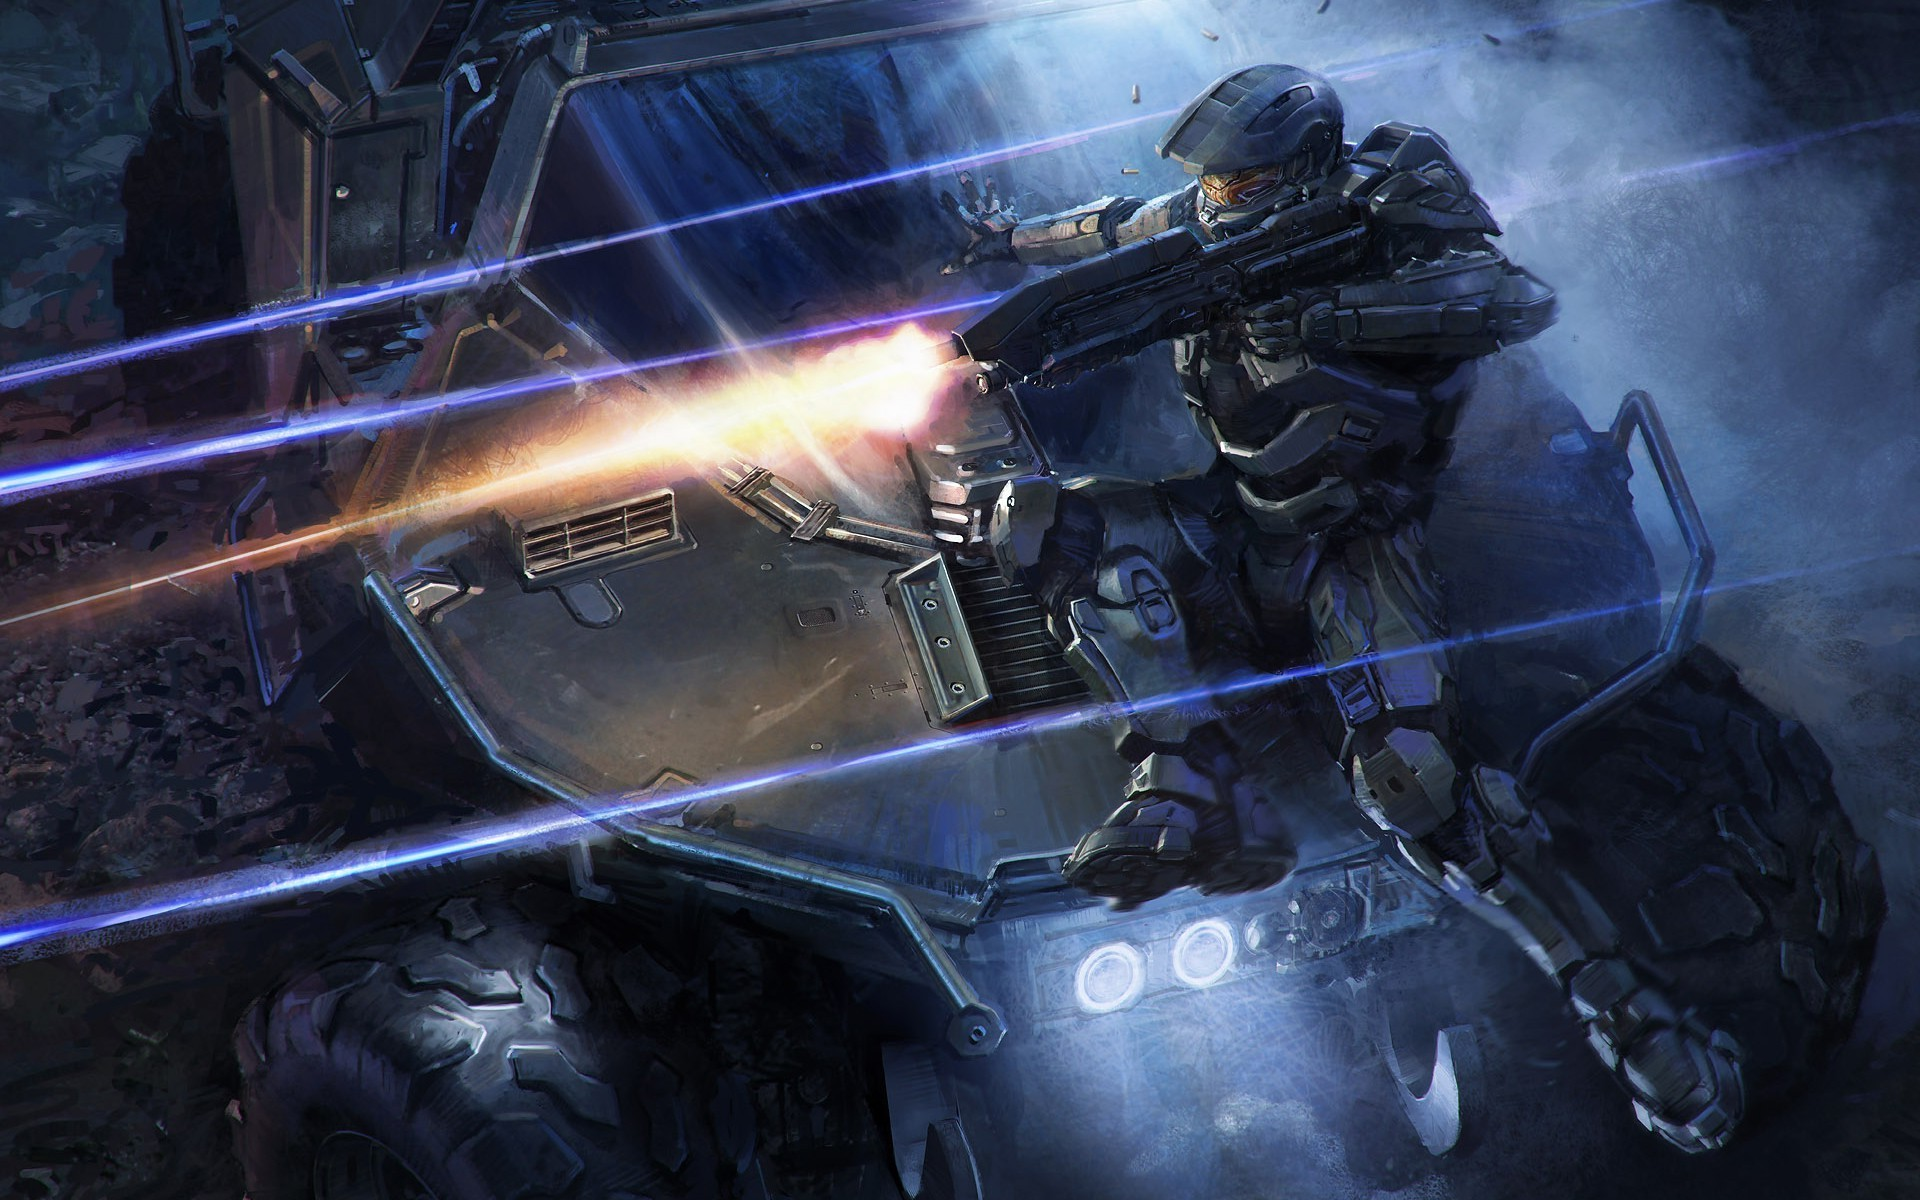 Halo Reach 3d Wallpaper Pc Halo Fantasy Art Video Games Master Chief Wallpapers Hd